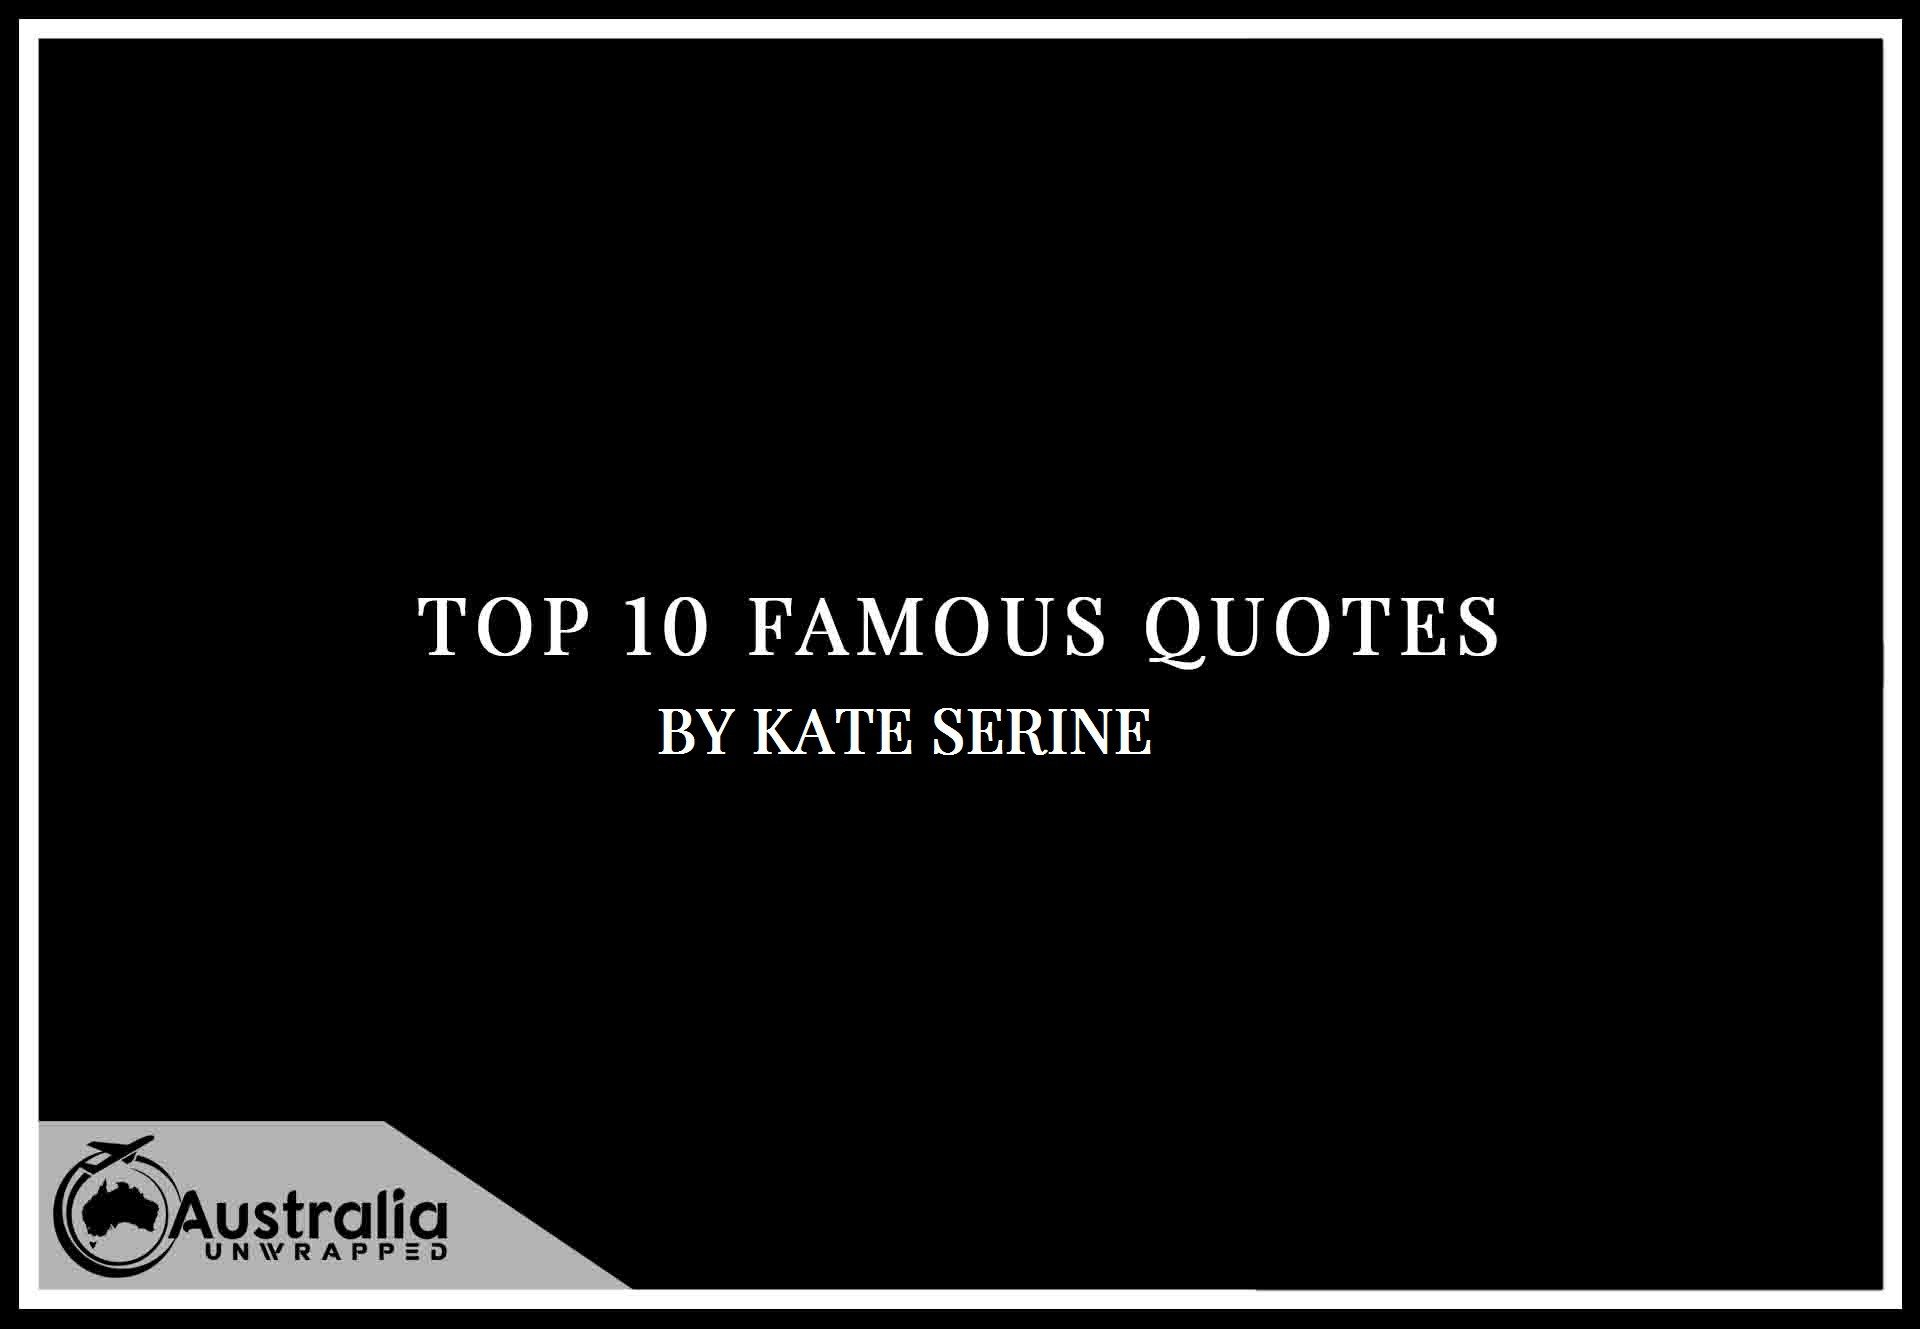 Kate SeRine's Top 10 Popular and Famous Quotes